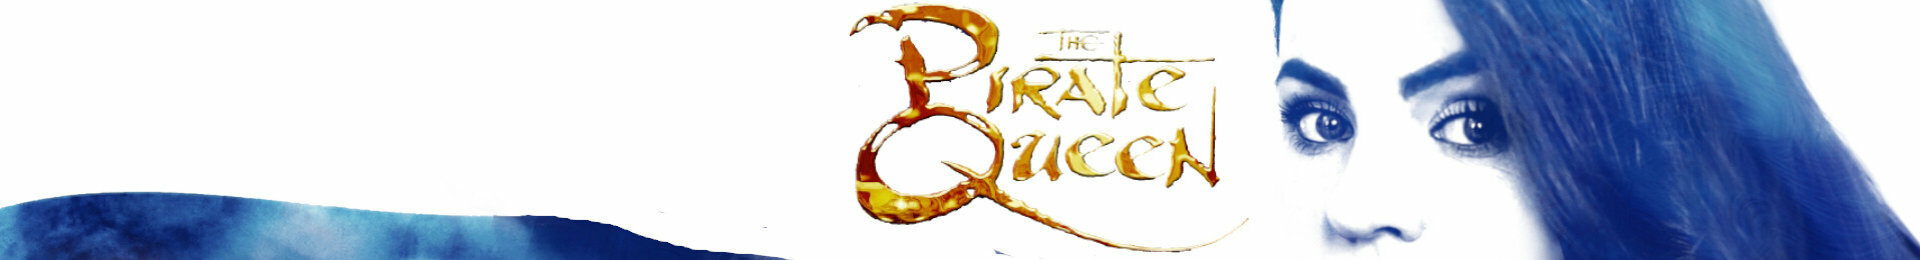 The Pirate Queen: A Charity Concert banner image